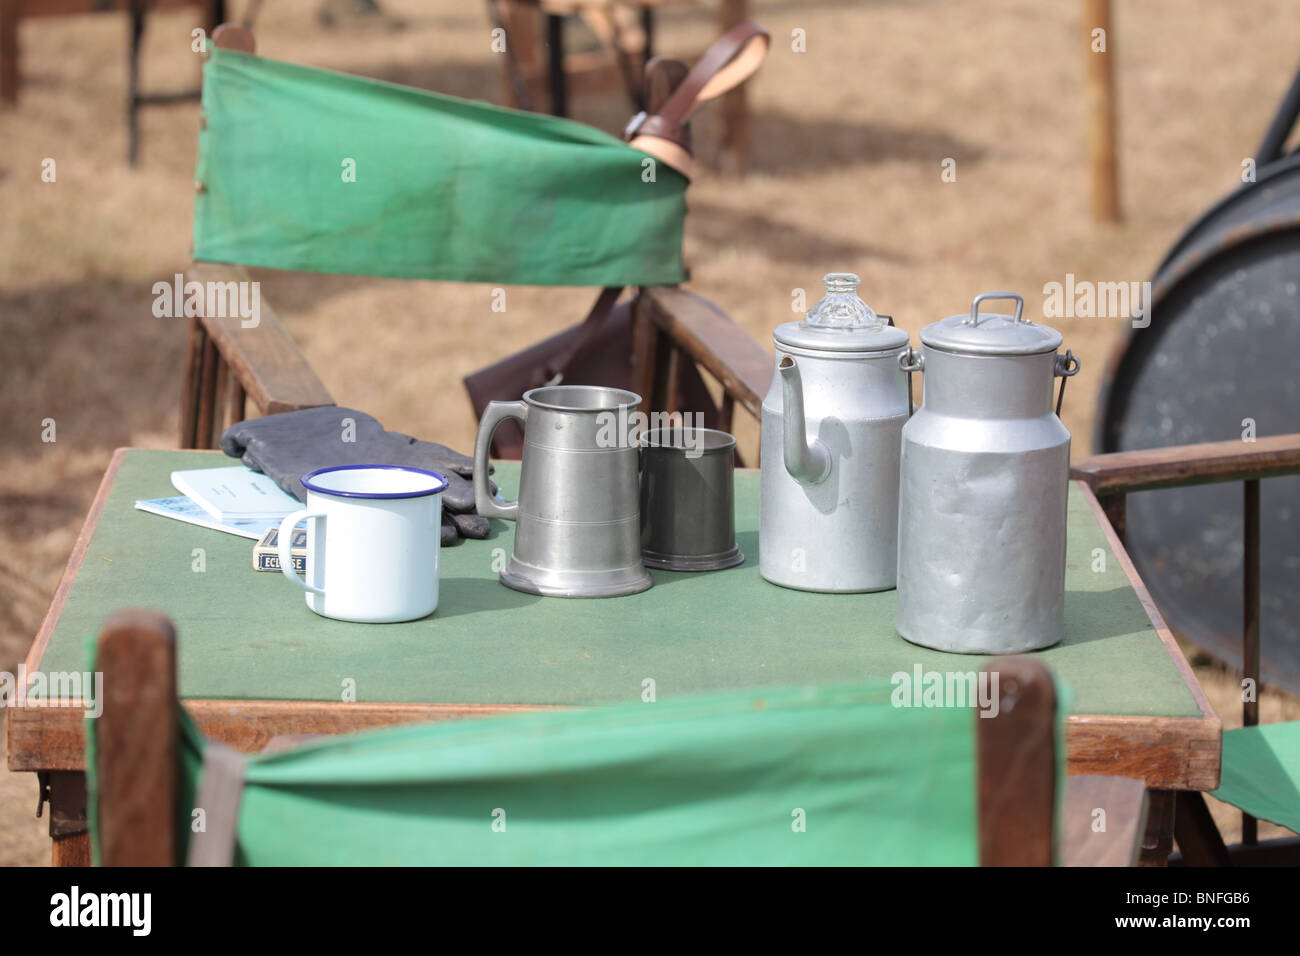 mess tent & mess tent Stock Photo Royalty Free Image: 30460282 - Alamy